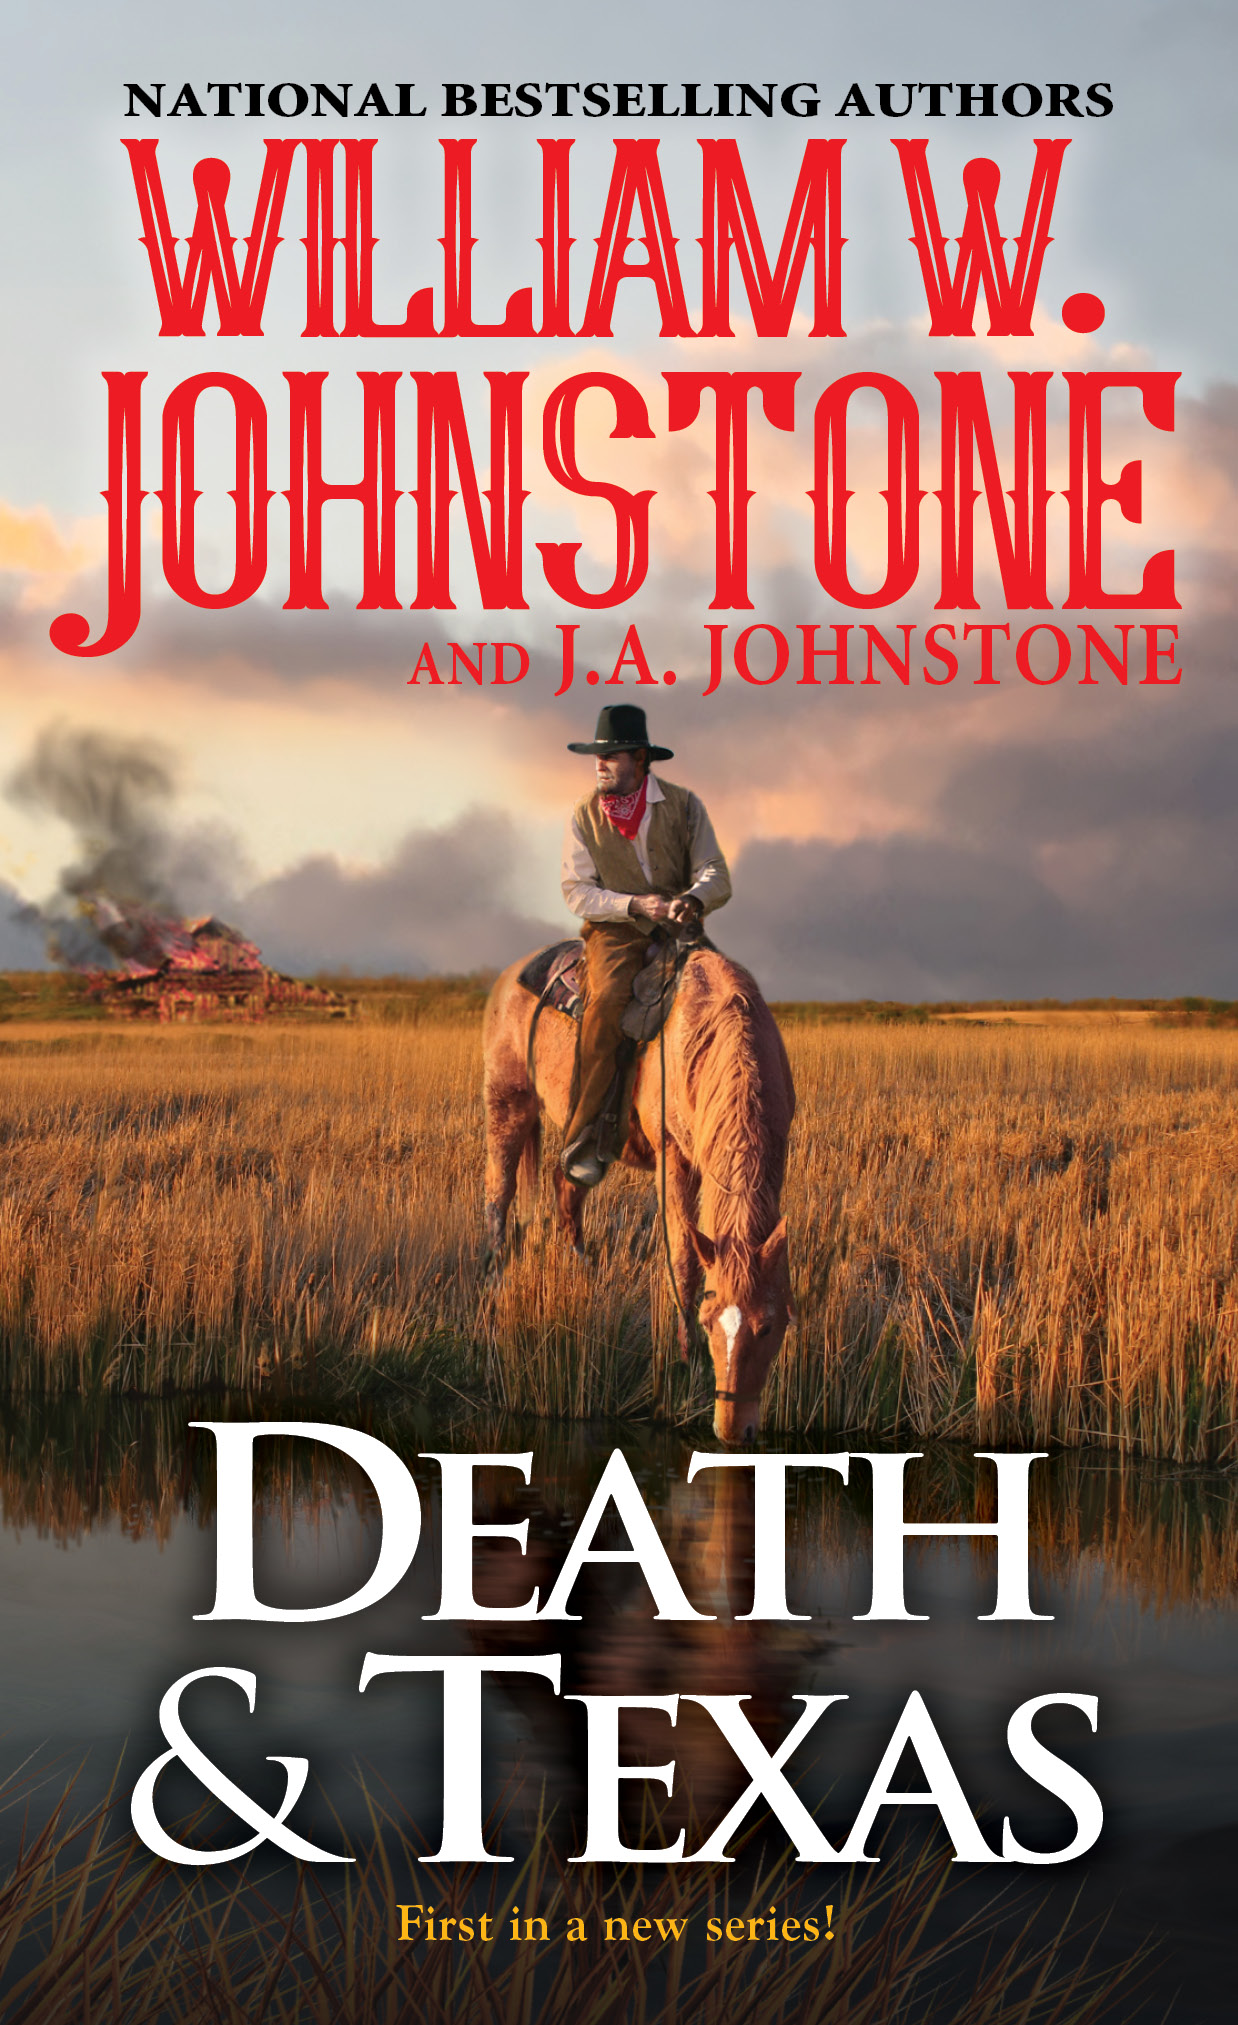 DEATH AND TEXAS by William W. Johnstone & J.A. Johnstone